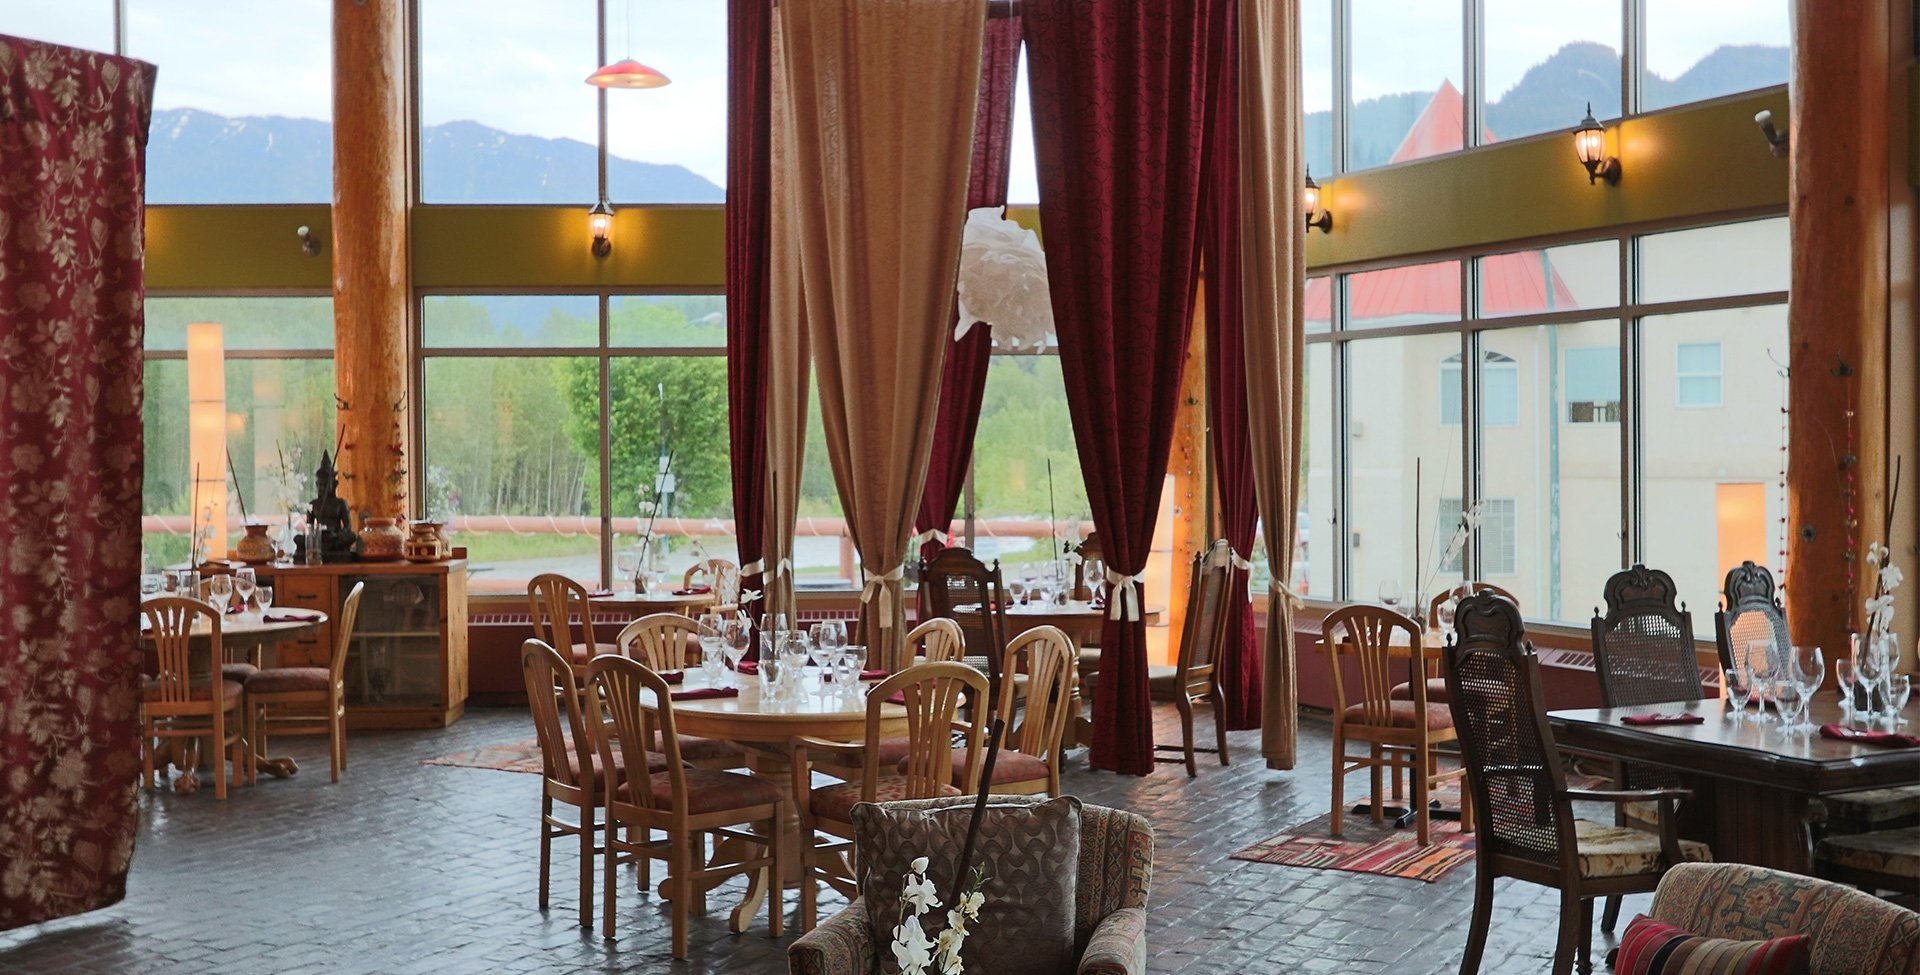 The dining room of the Tandoor & Grill Restaurant, located on the Stanford Fernie property showcases elegantly set tables placed before floor to ceiling windows reflecting scenic views of the Rocky Mountains with red and beige privacy curtains suspended from above.